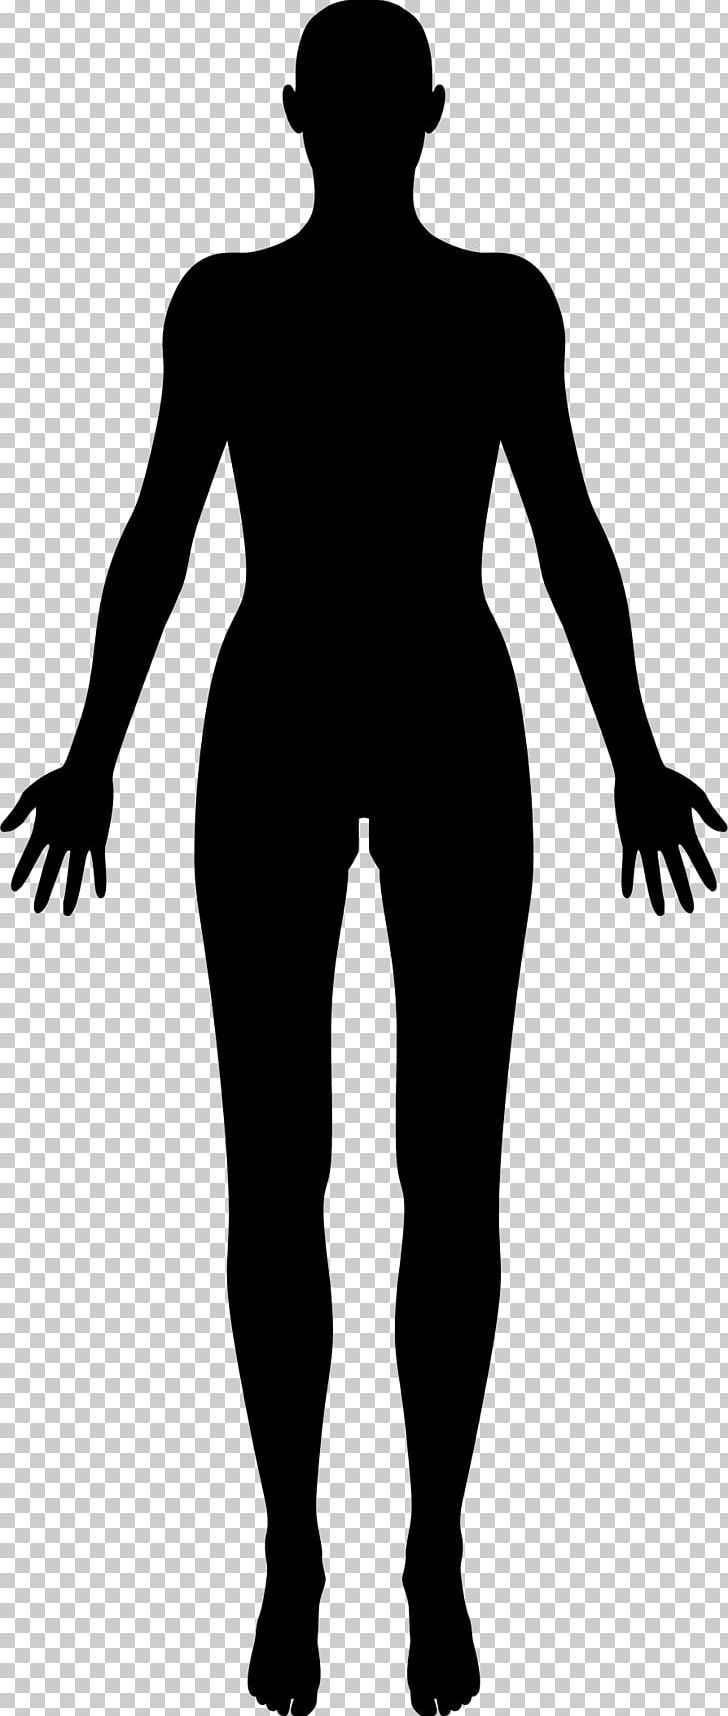 Human clipart clip art transparent download Female Body Shape Human Body Silhouette PNG, Clipart, Anatomy ... clip art transparent download